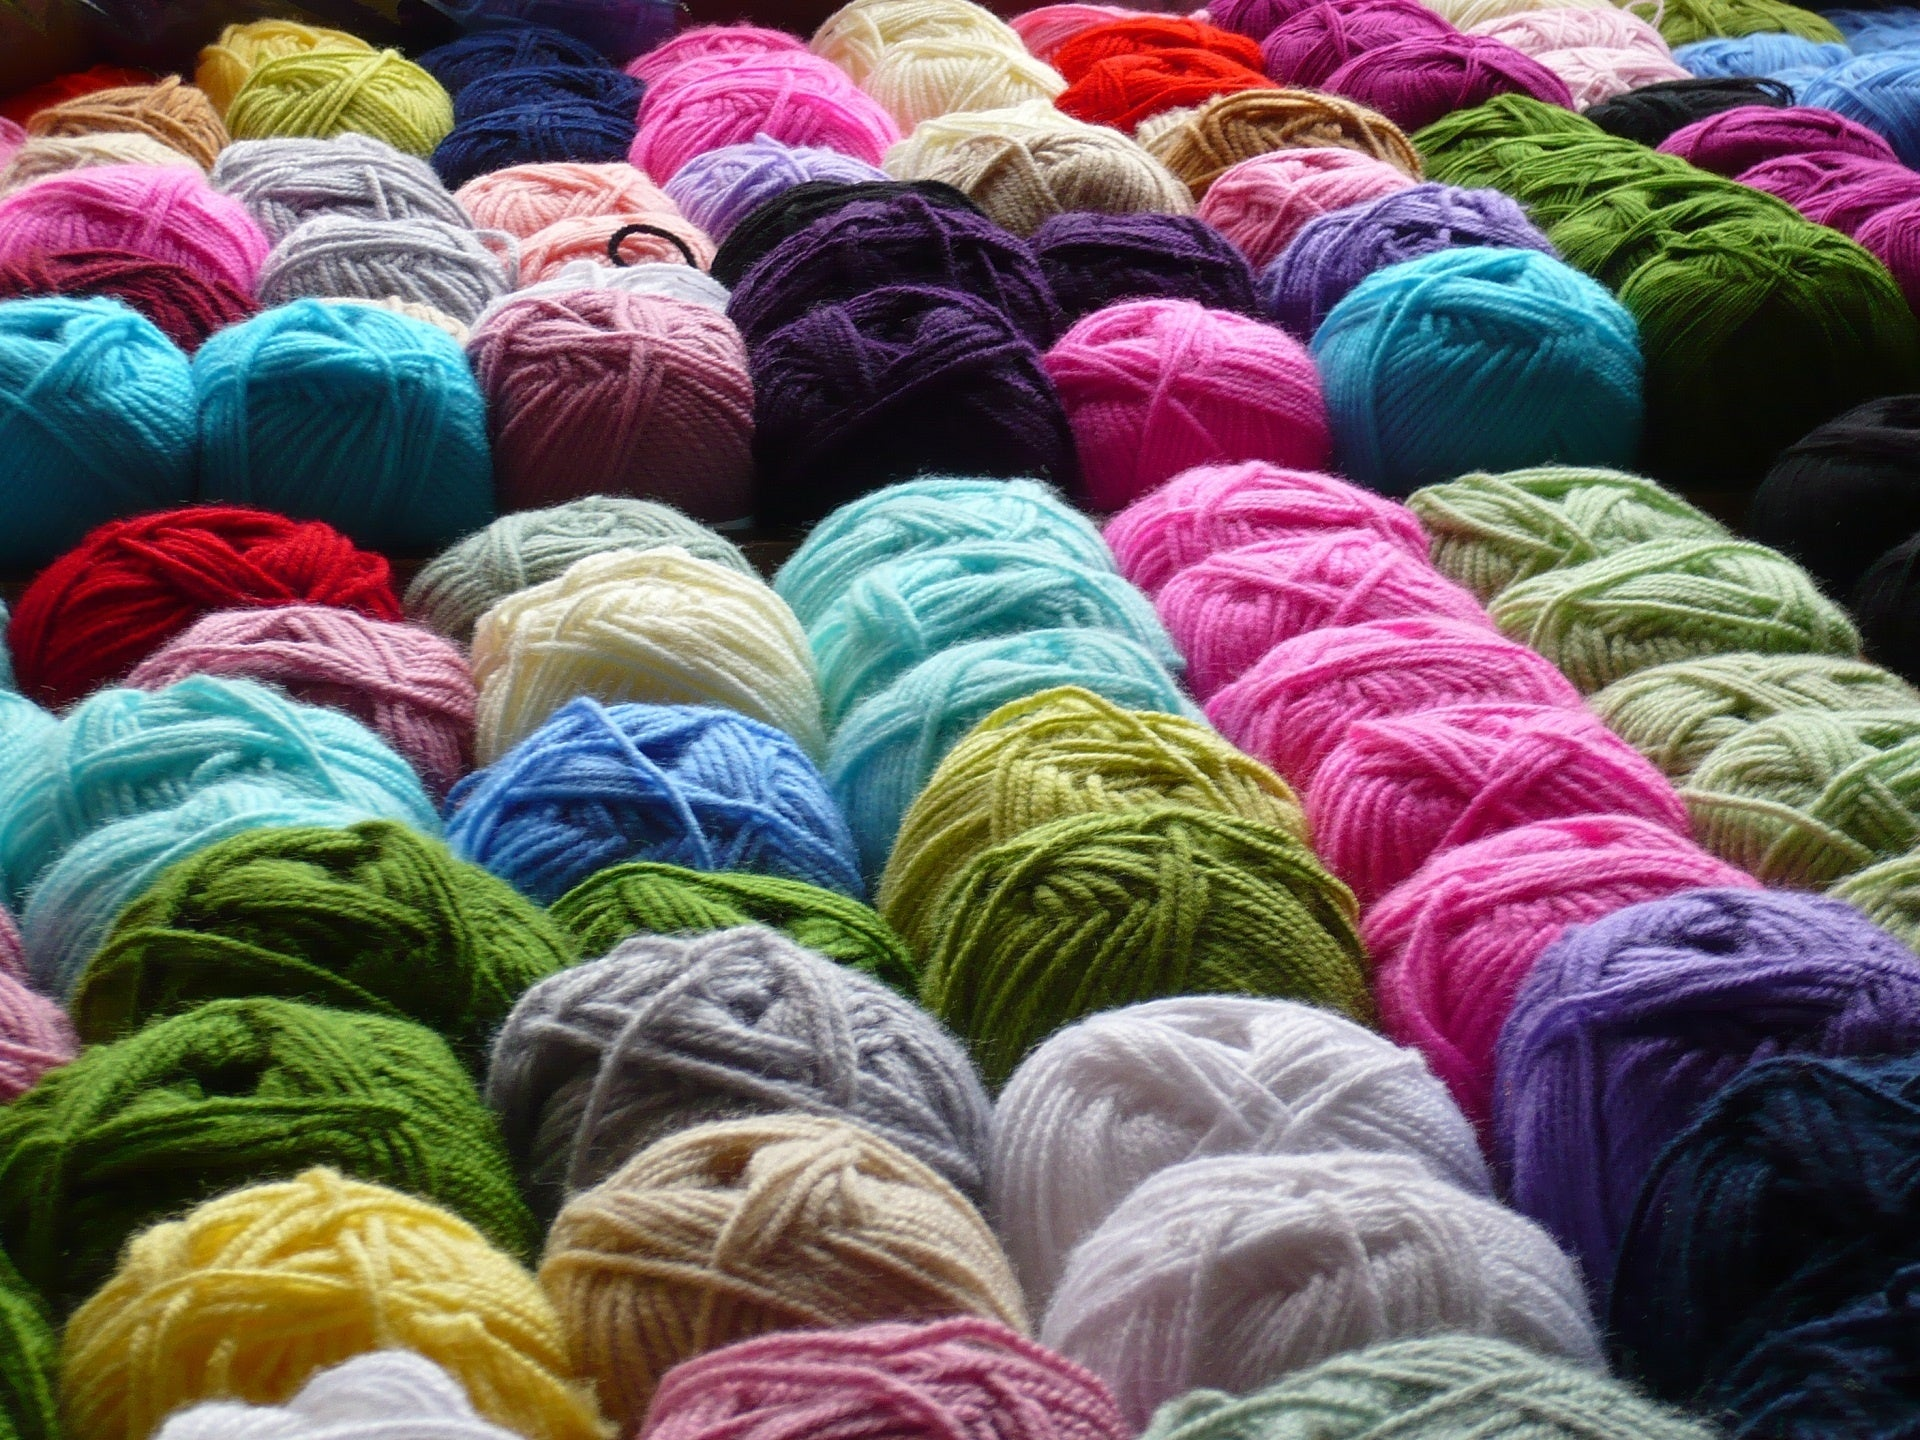 Various colors of yarn